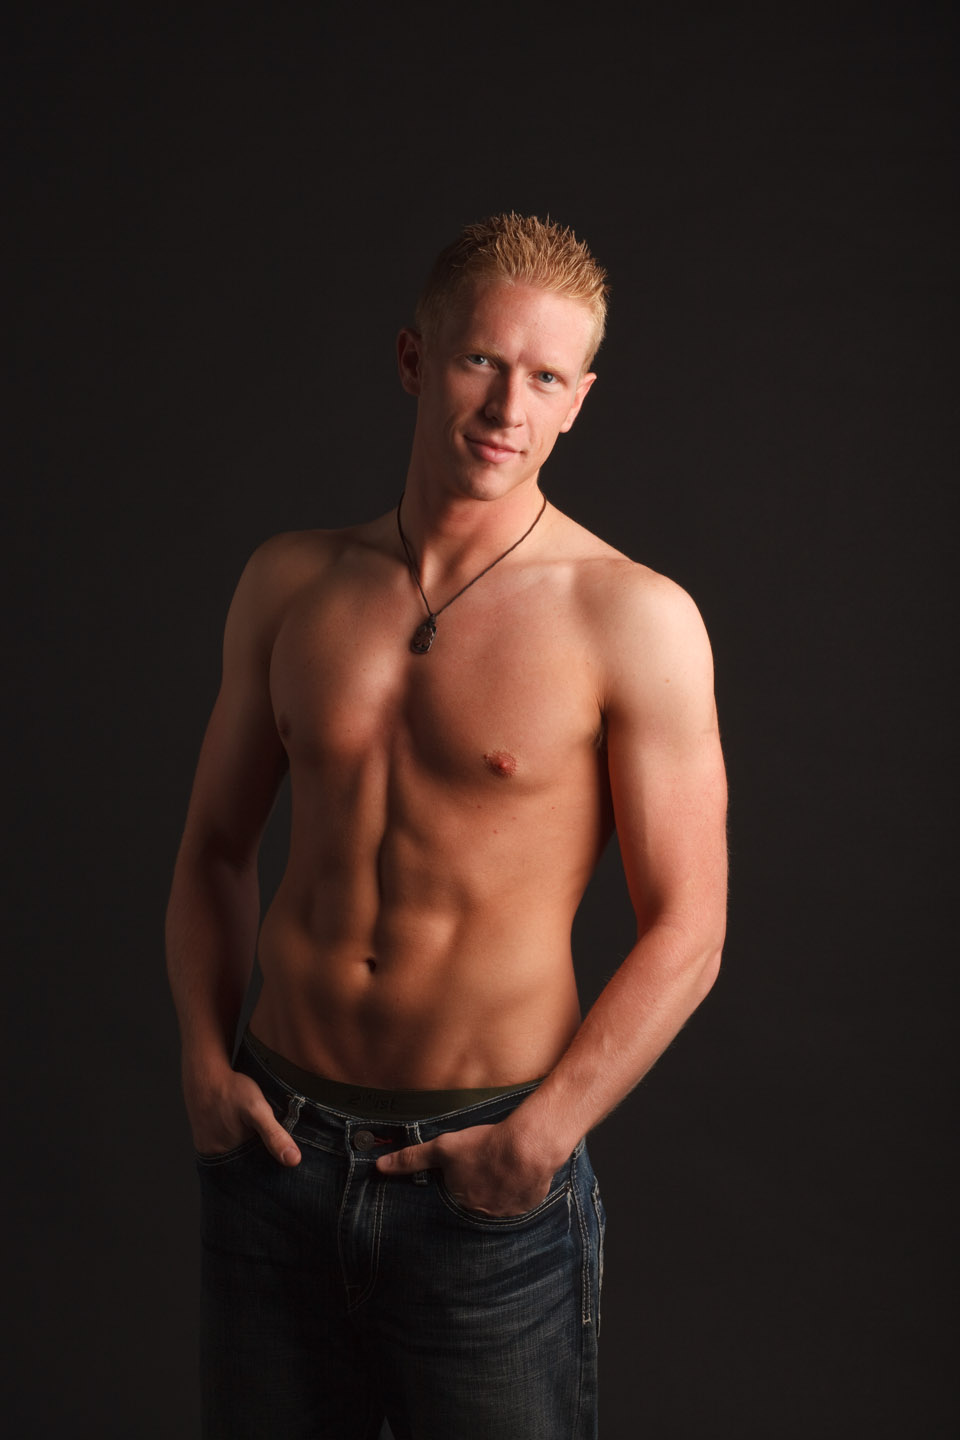 Male model shirtless portraits in studio